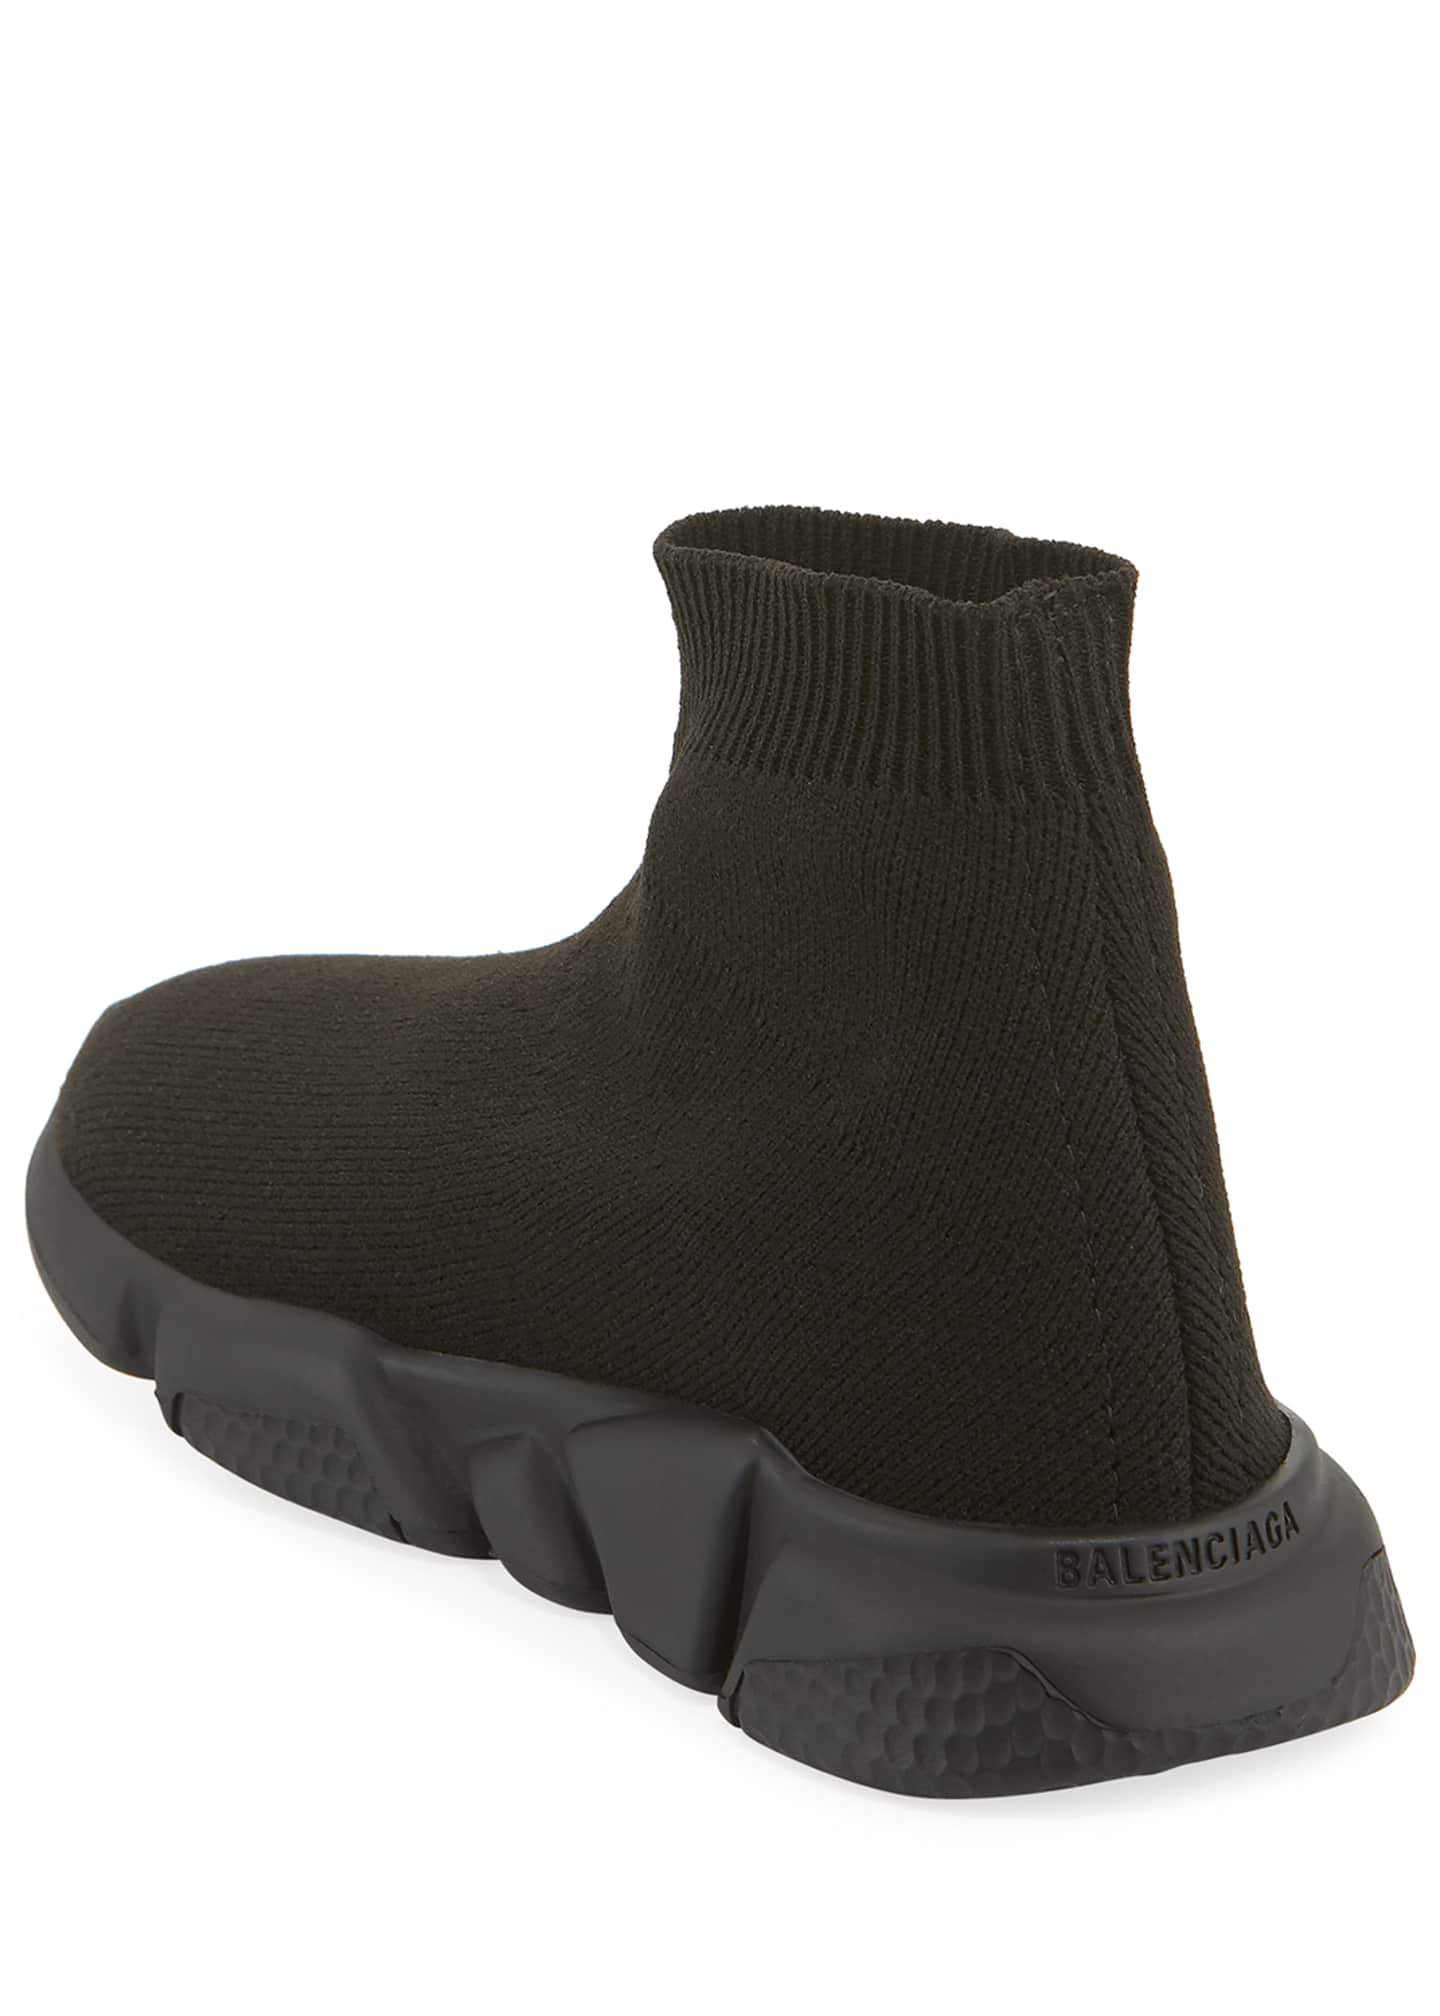 Image 4 of 4: Speed Sock Sneakers with Tonal Sole, Toddler/Kids